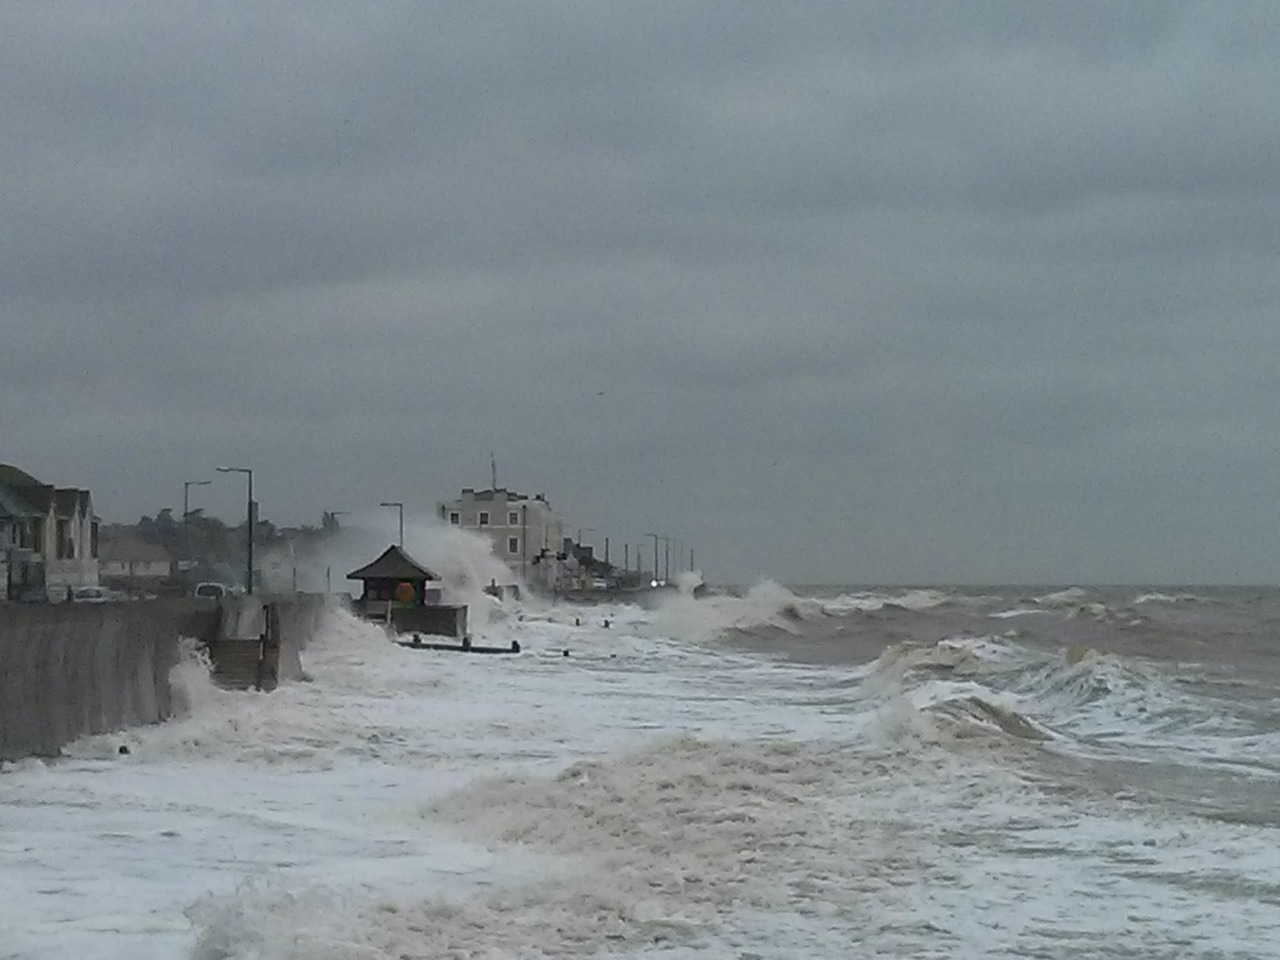 Rough seas breaking over the road this morning at Walton.